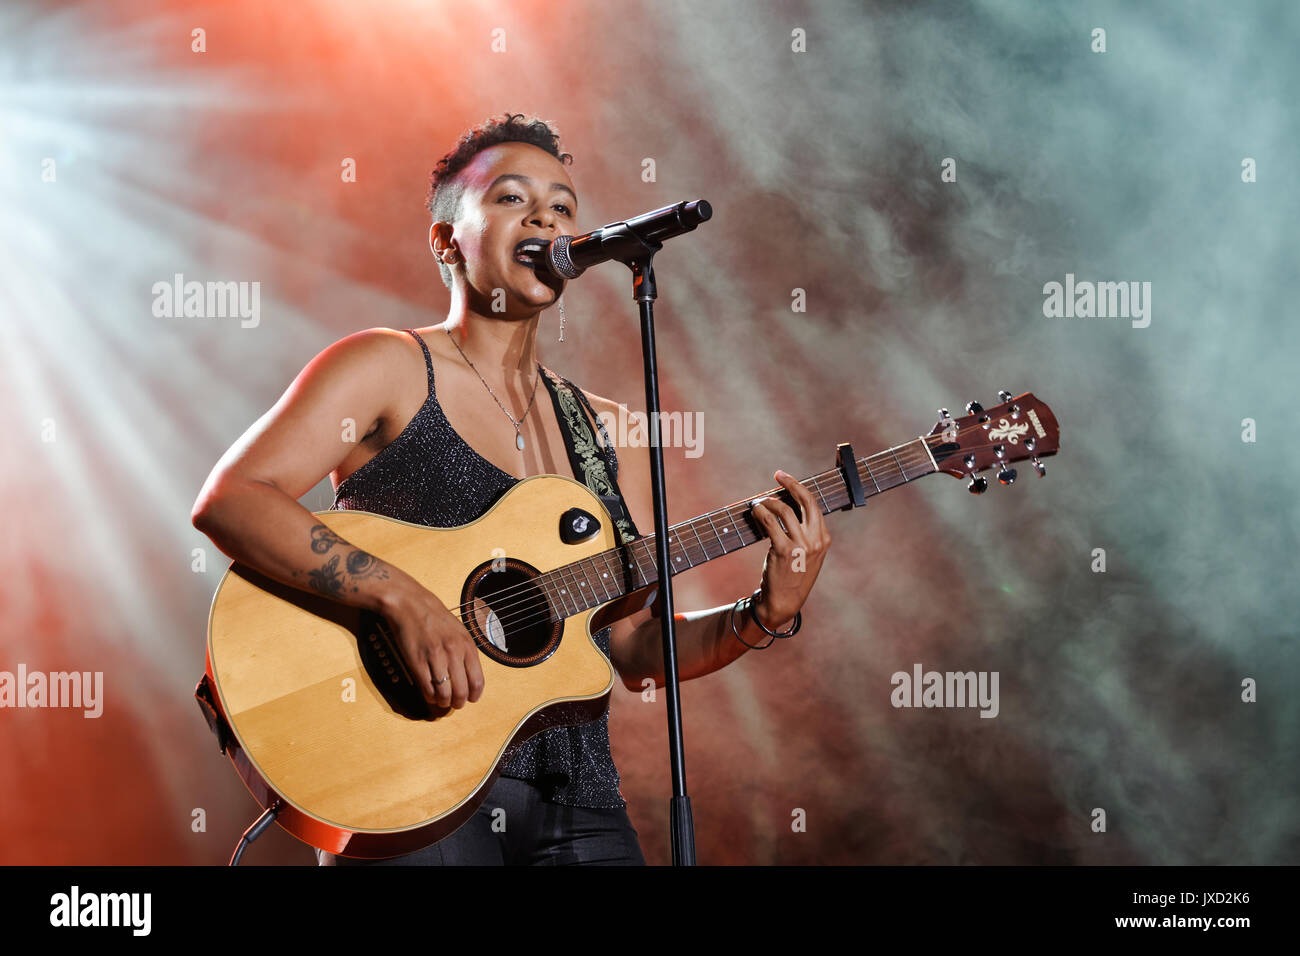 Montreal Canada, 14/08/2017 . B.C. vocalist Ms Holmes performs on stage at the Excellence show held during Montreal Pride week - Stock Image